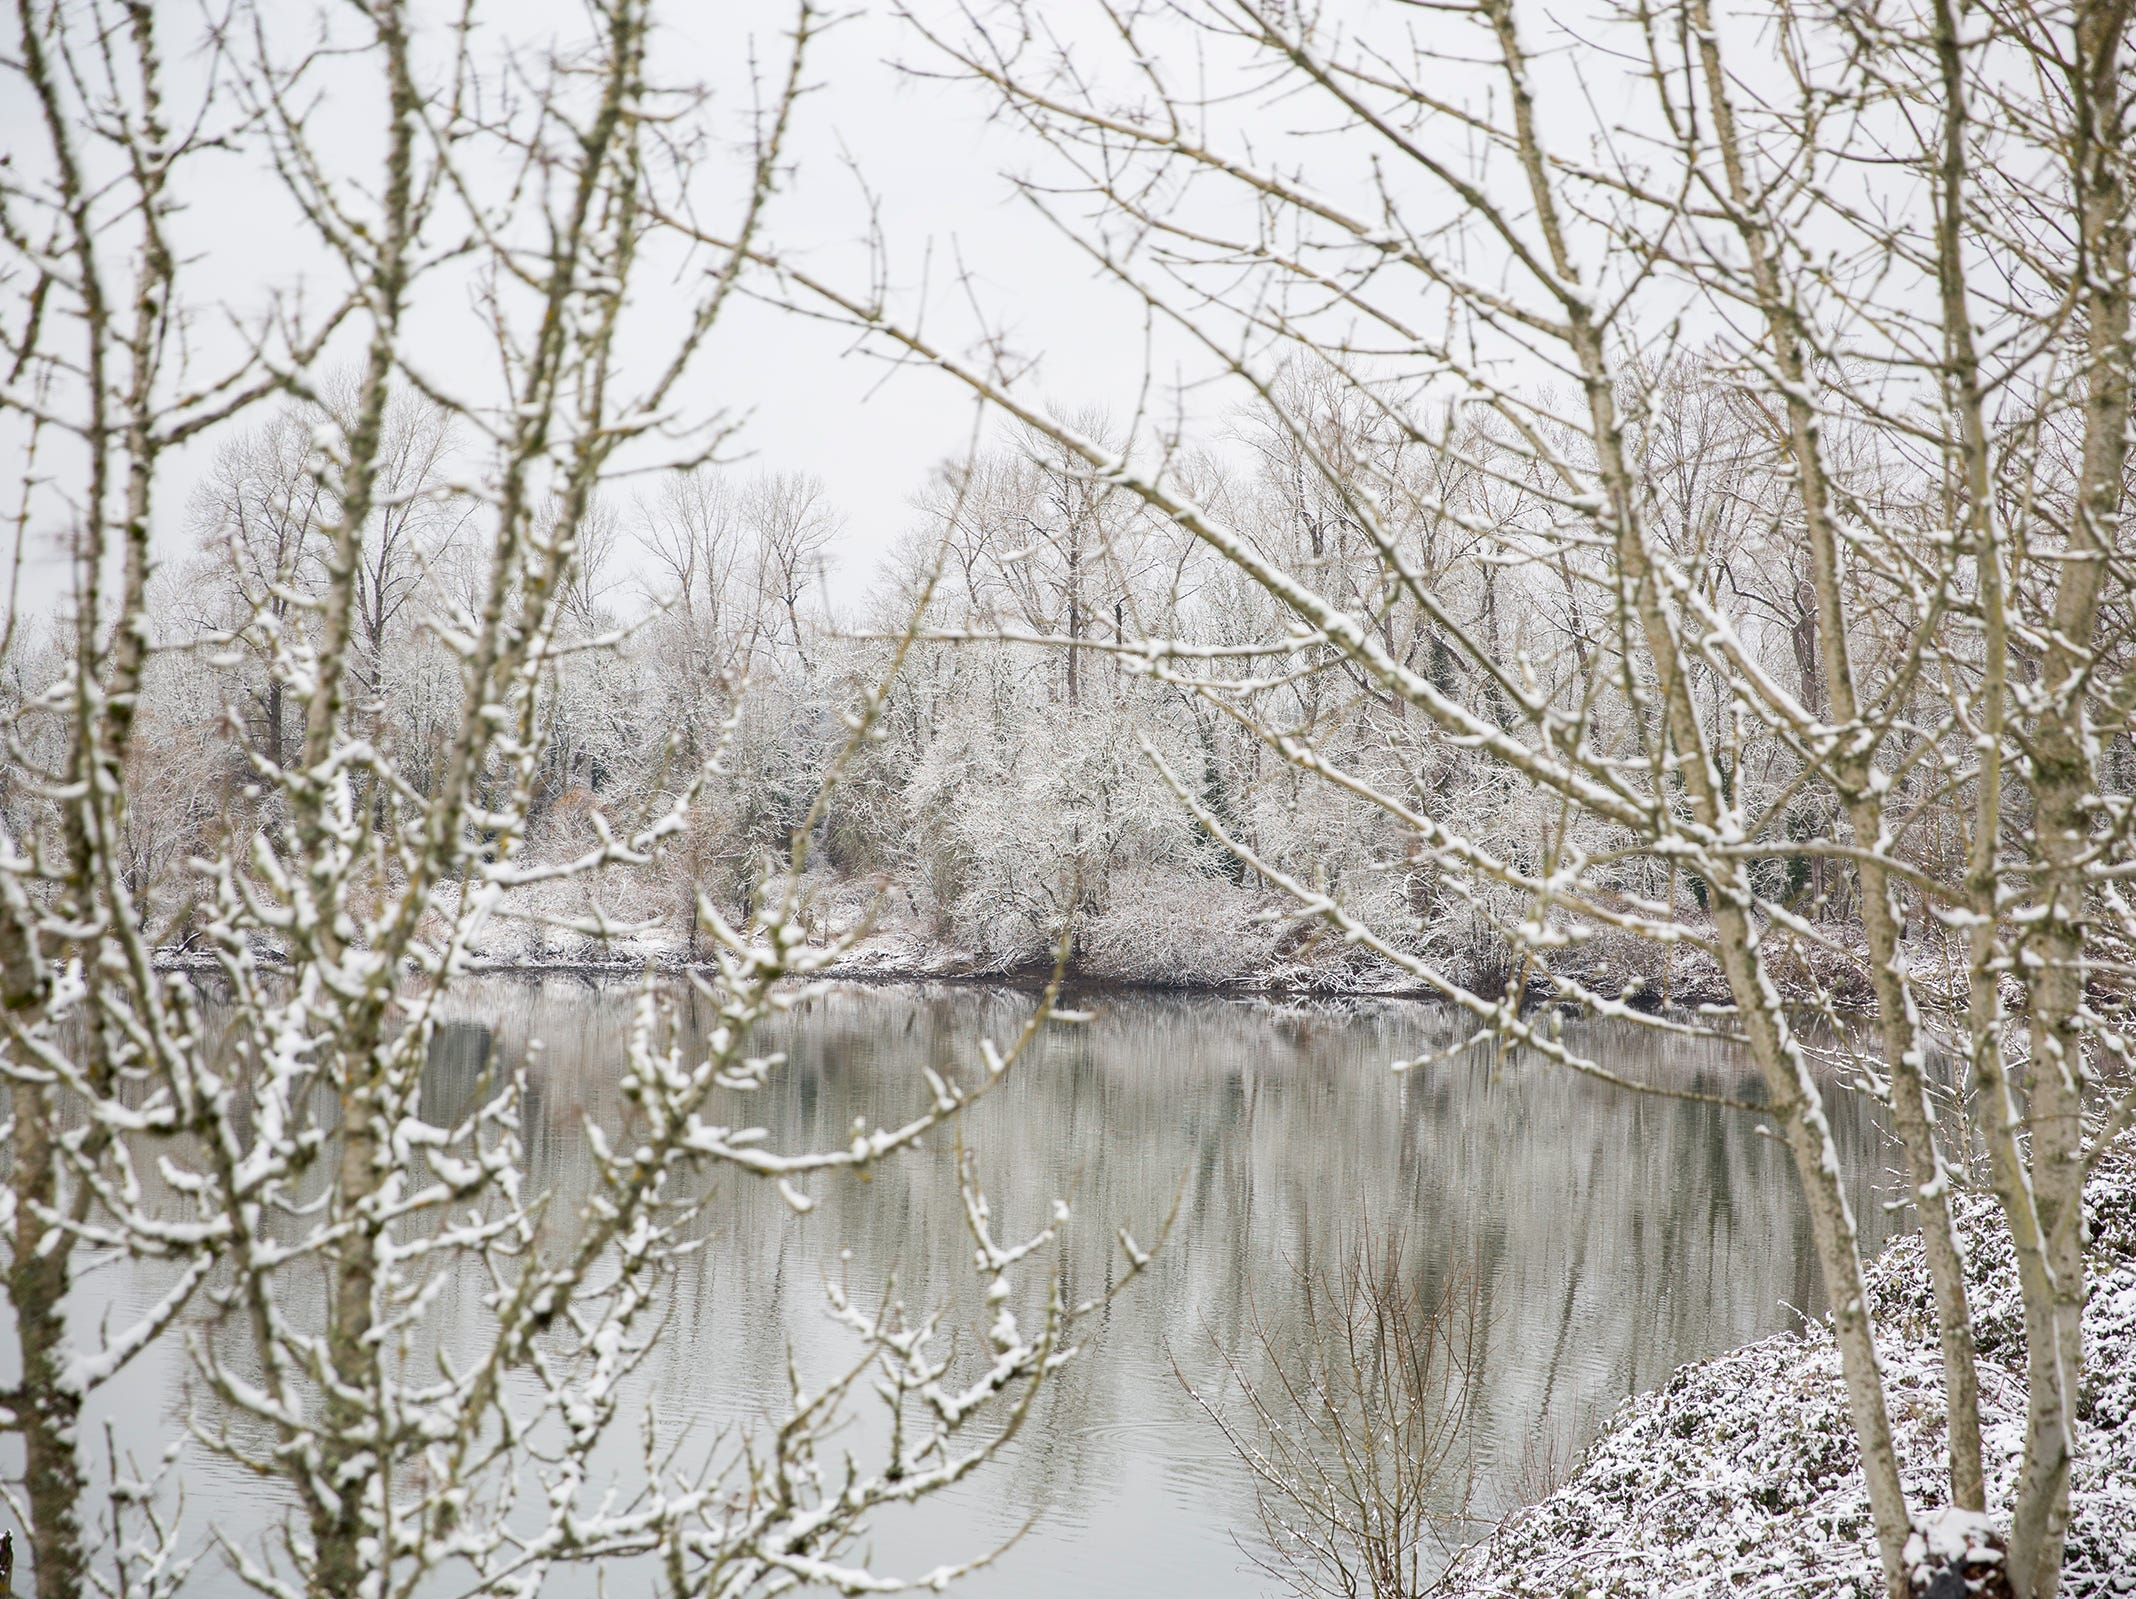 Riverfront Park is pictured in the snow in Salem on Tuesday, Feb. 5, 2019.